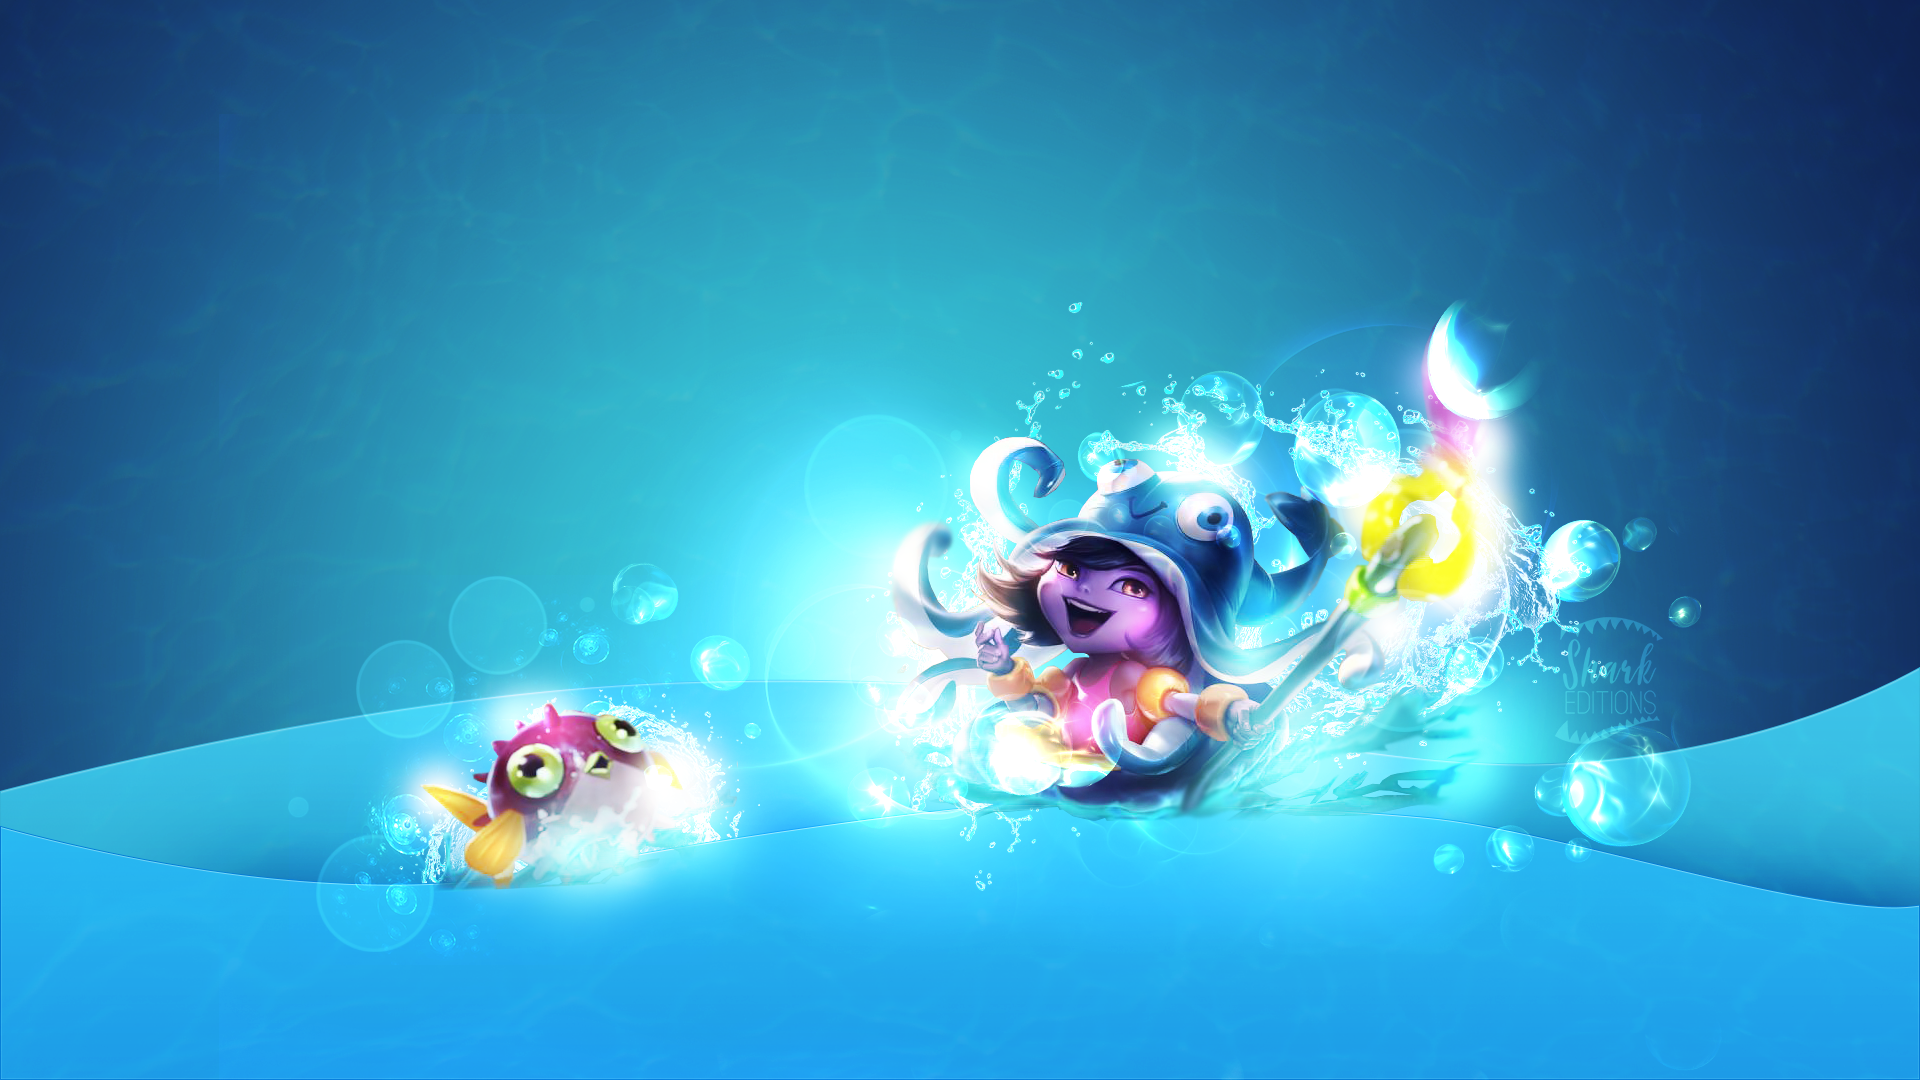 Lulu Pool Party Wallpaper League Of Legends By Leftlucy On Deviantart